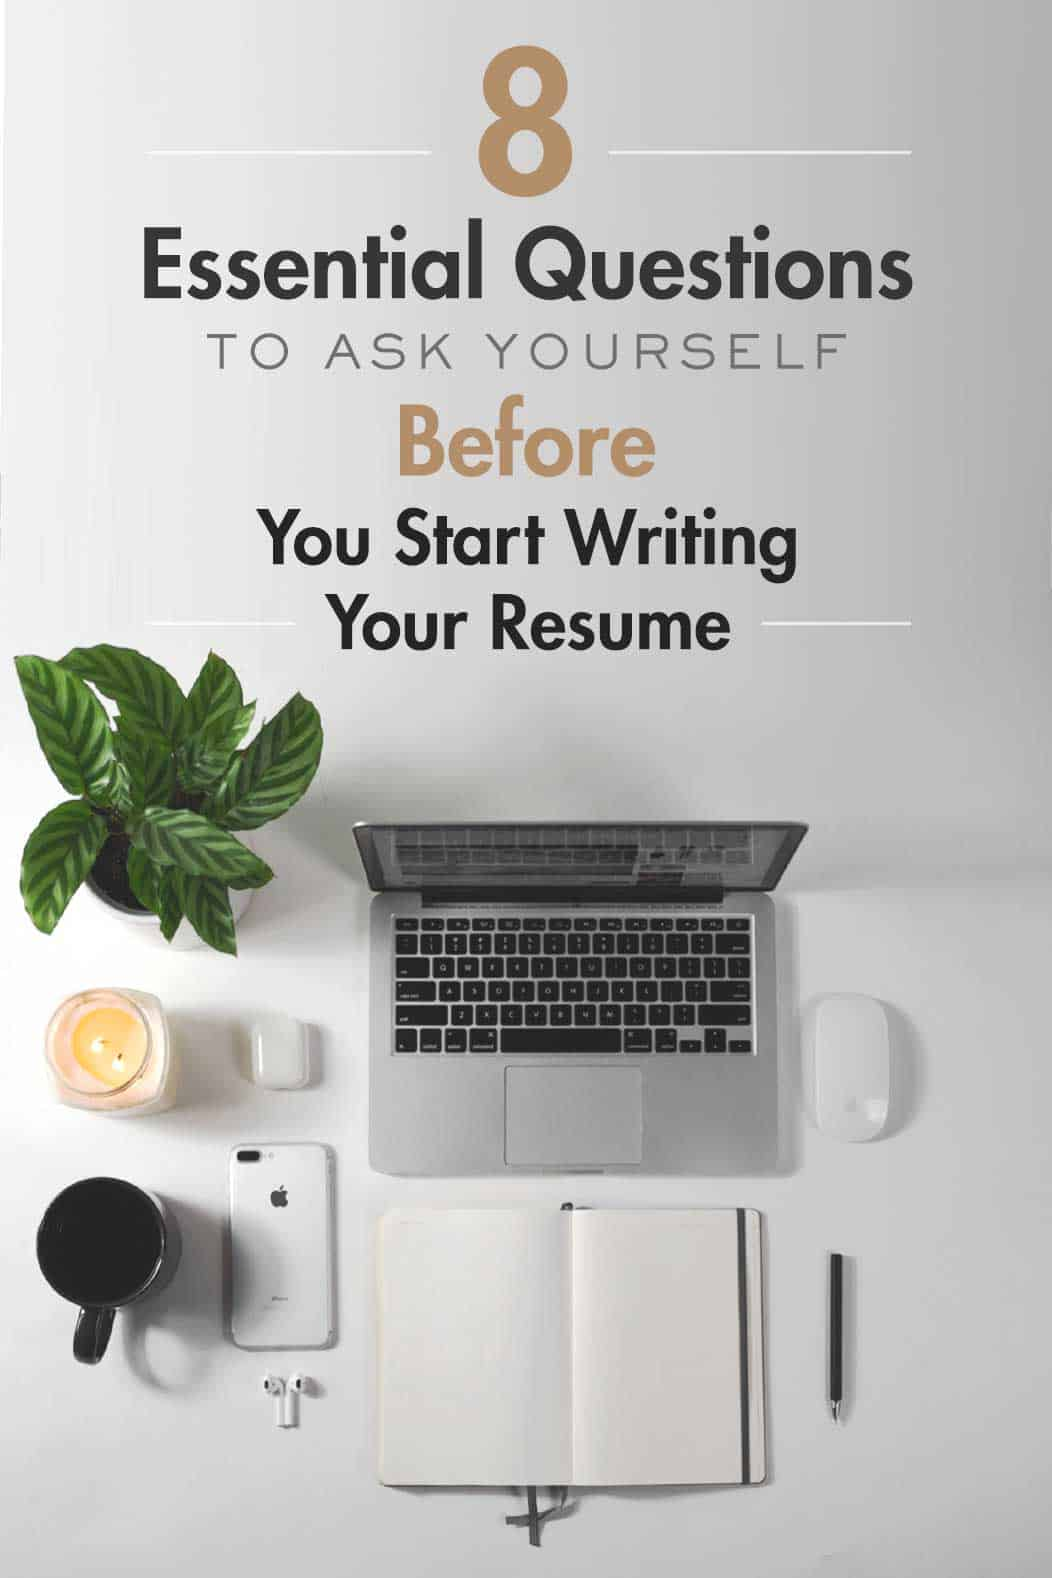 8 Questions to Ask Yourself Before Writing Your Resume